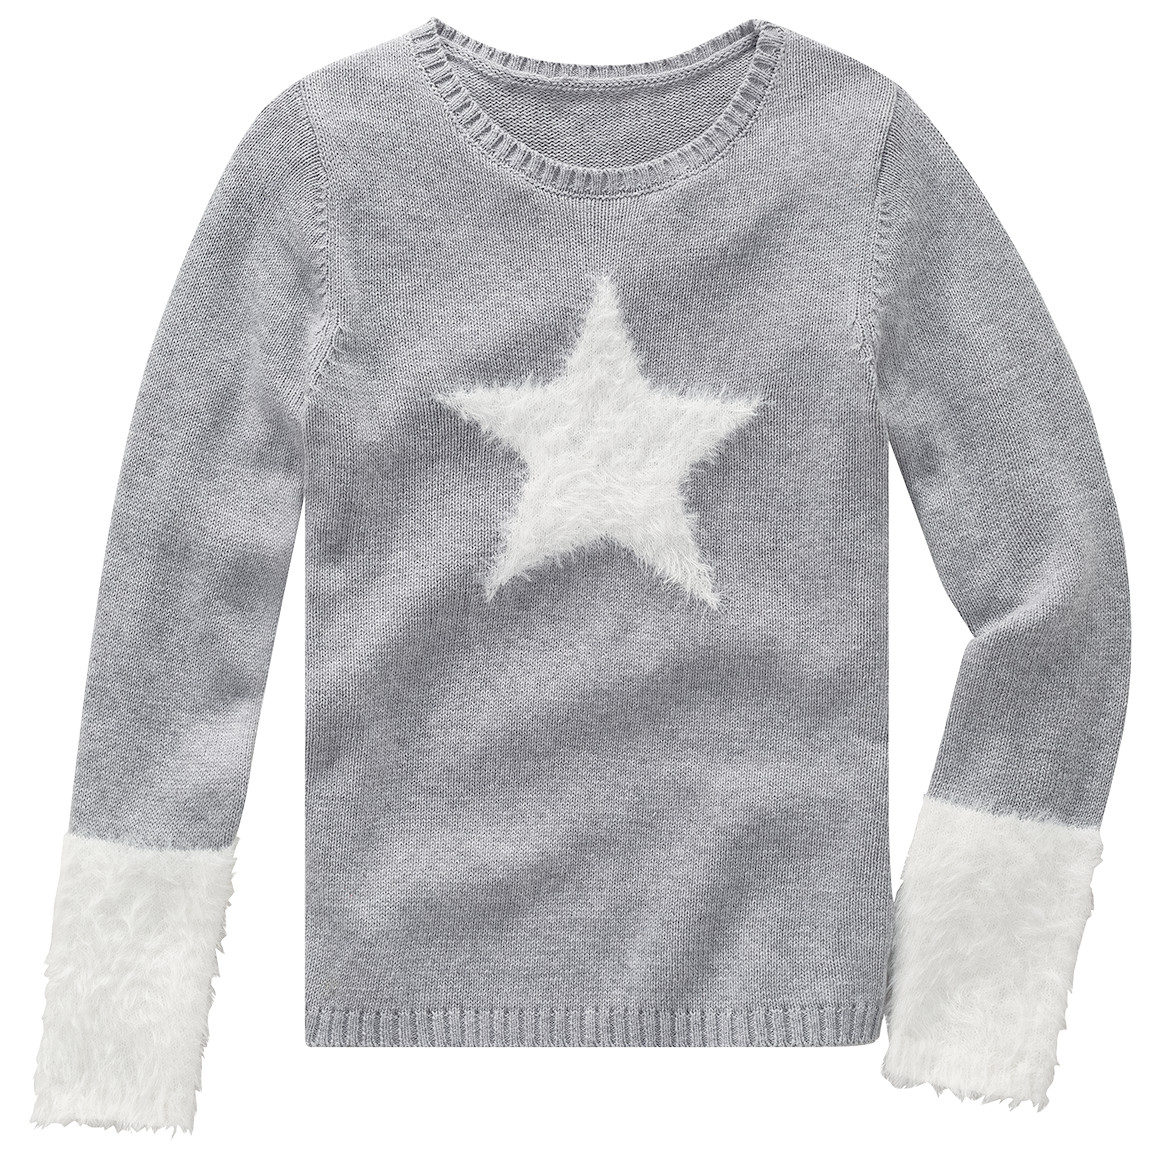 Girlsoberteile - Mädchen Strickpullover mit Featheryarn - Onlineshop Ernstings family